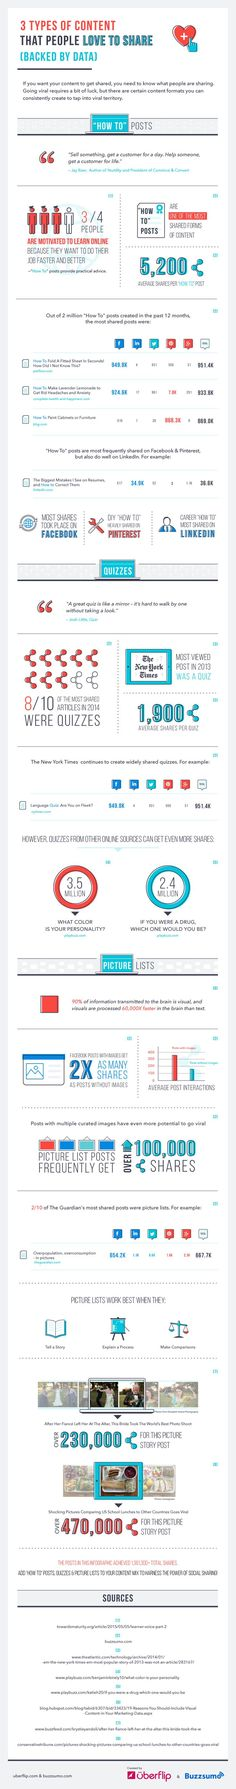 3 Types of Content People Love to Share